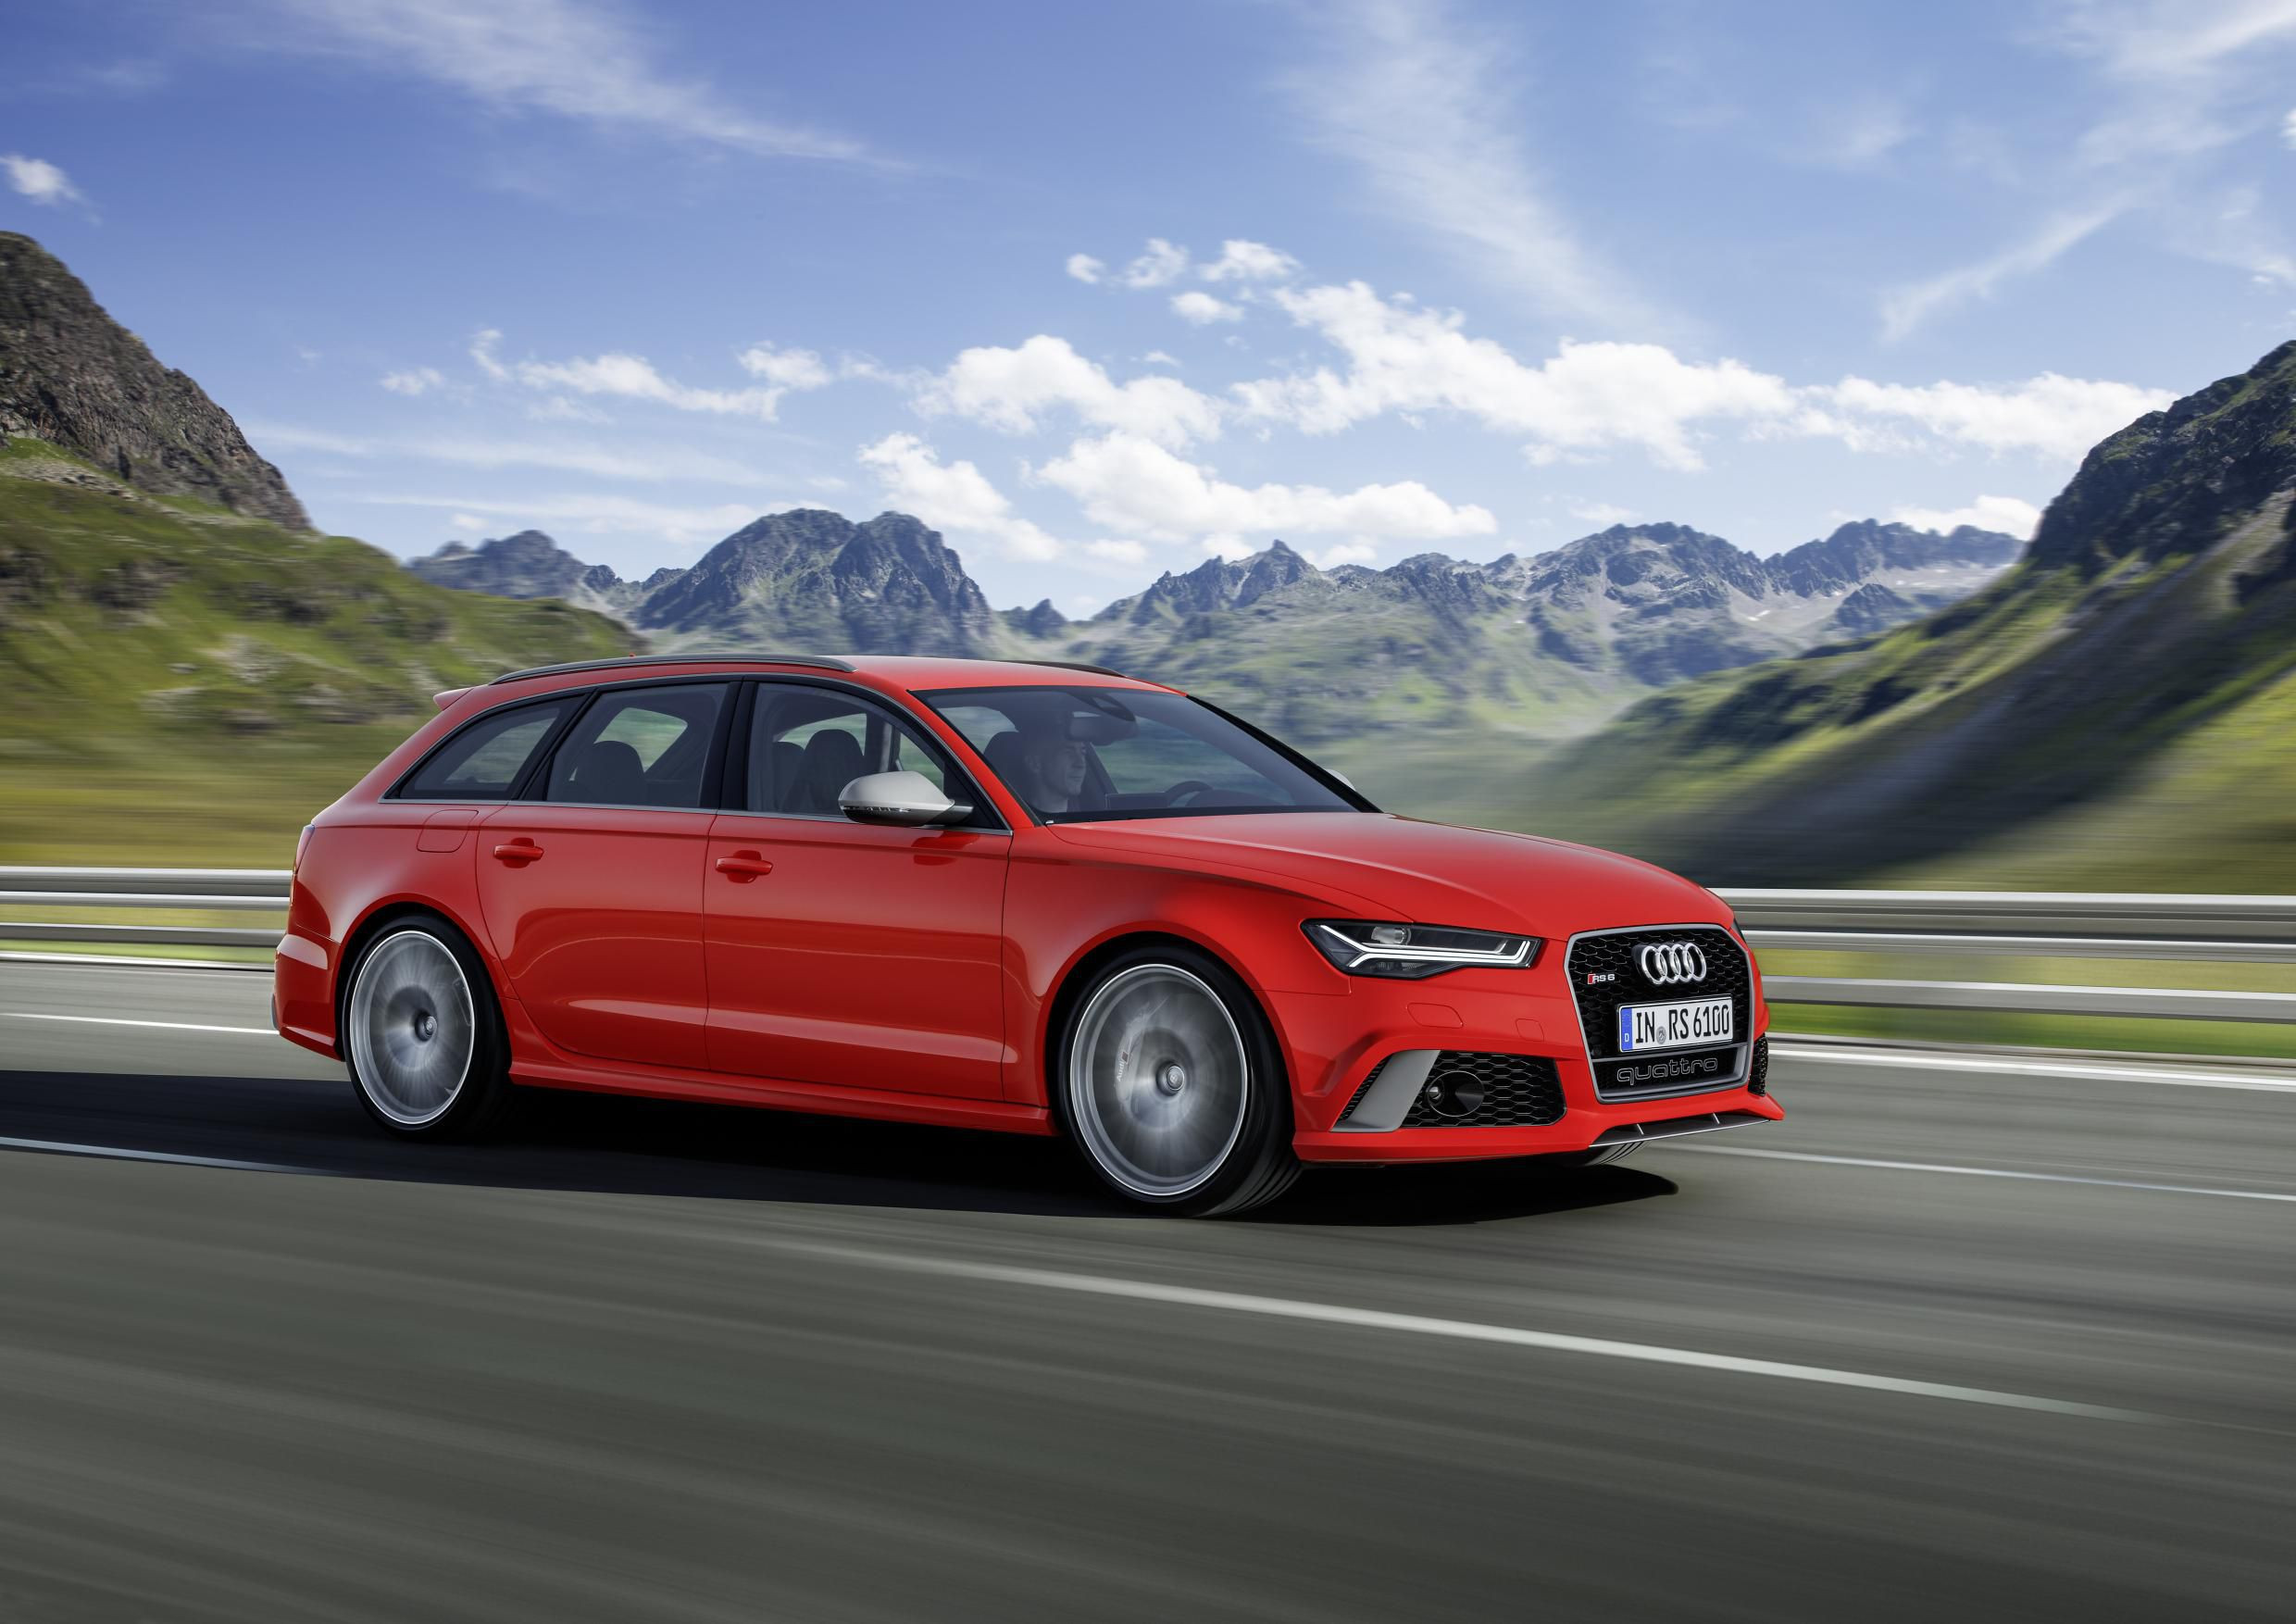 Red Audi RS 6 moving at speed through mountain roads